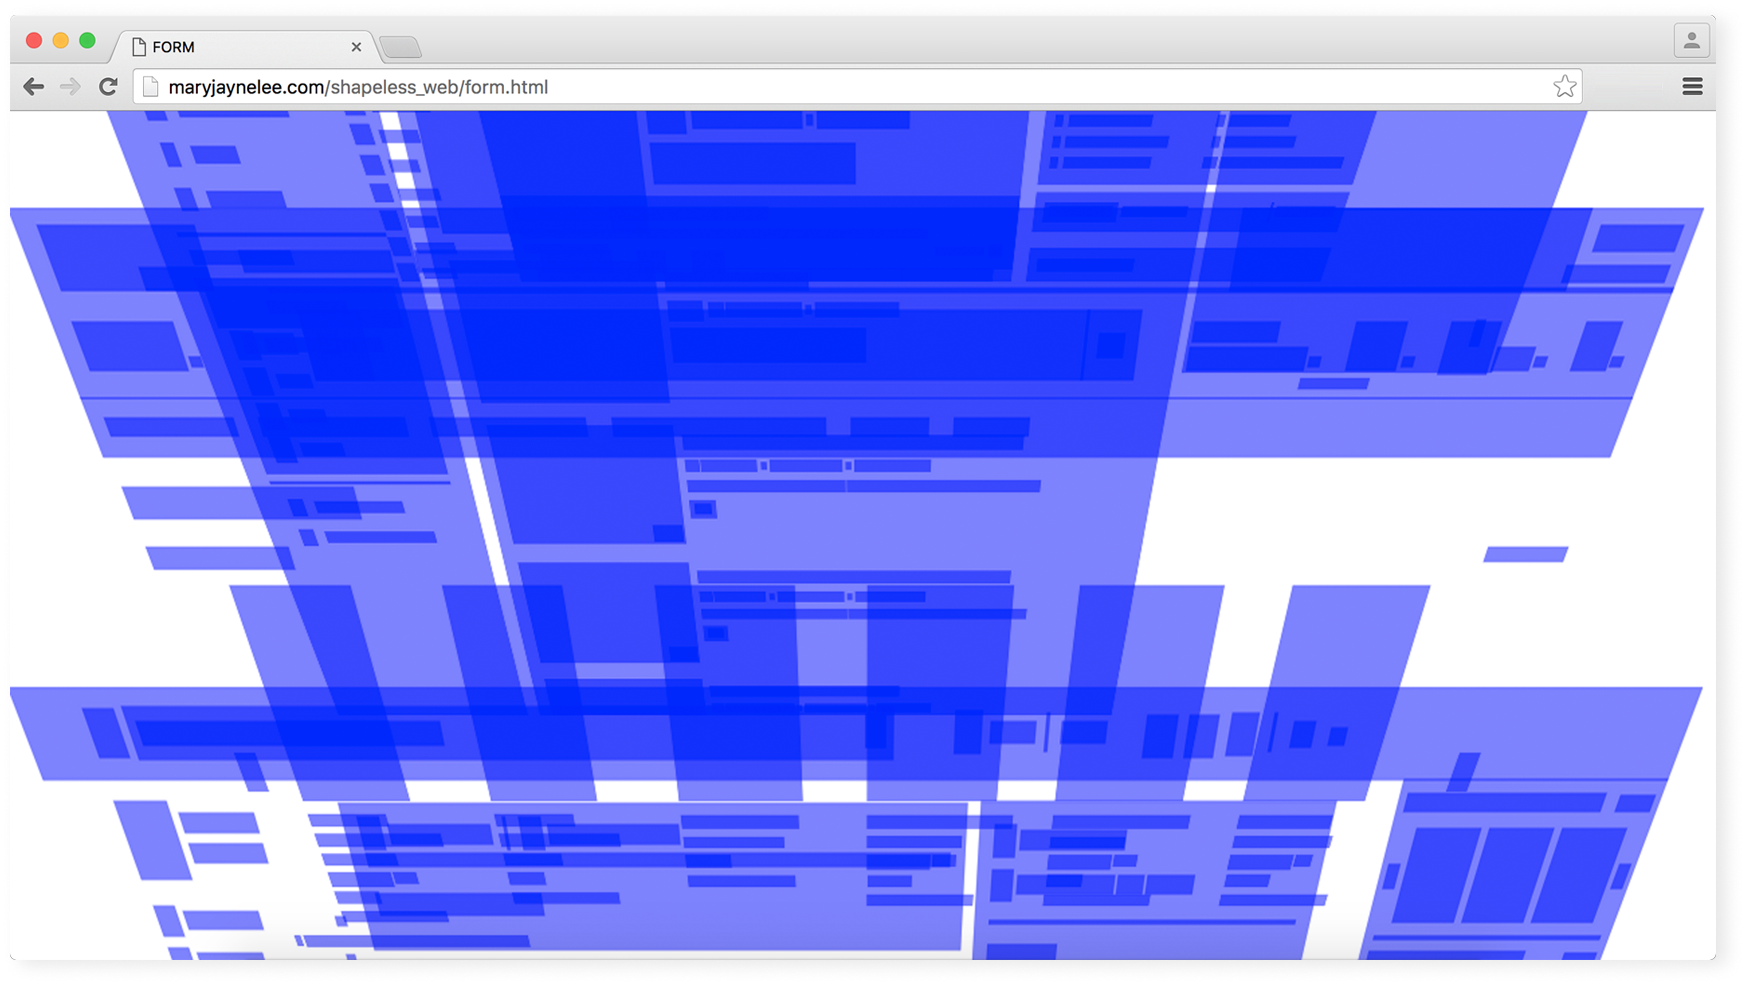 Shaping the Shapeless Web project layered perspective screen